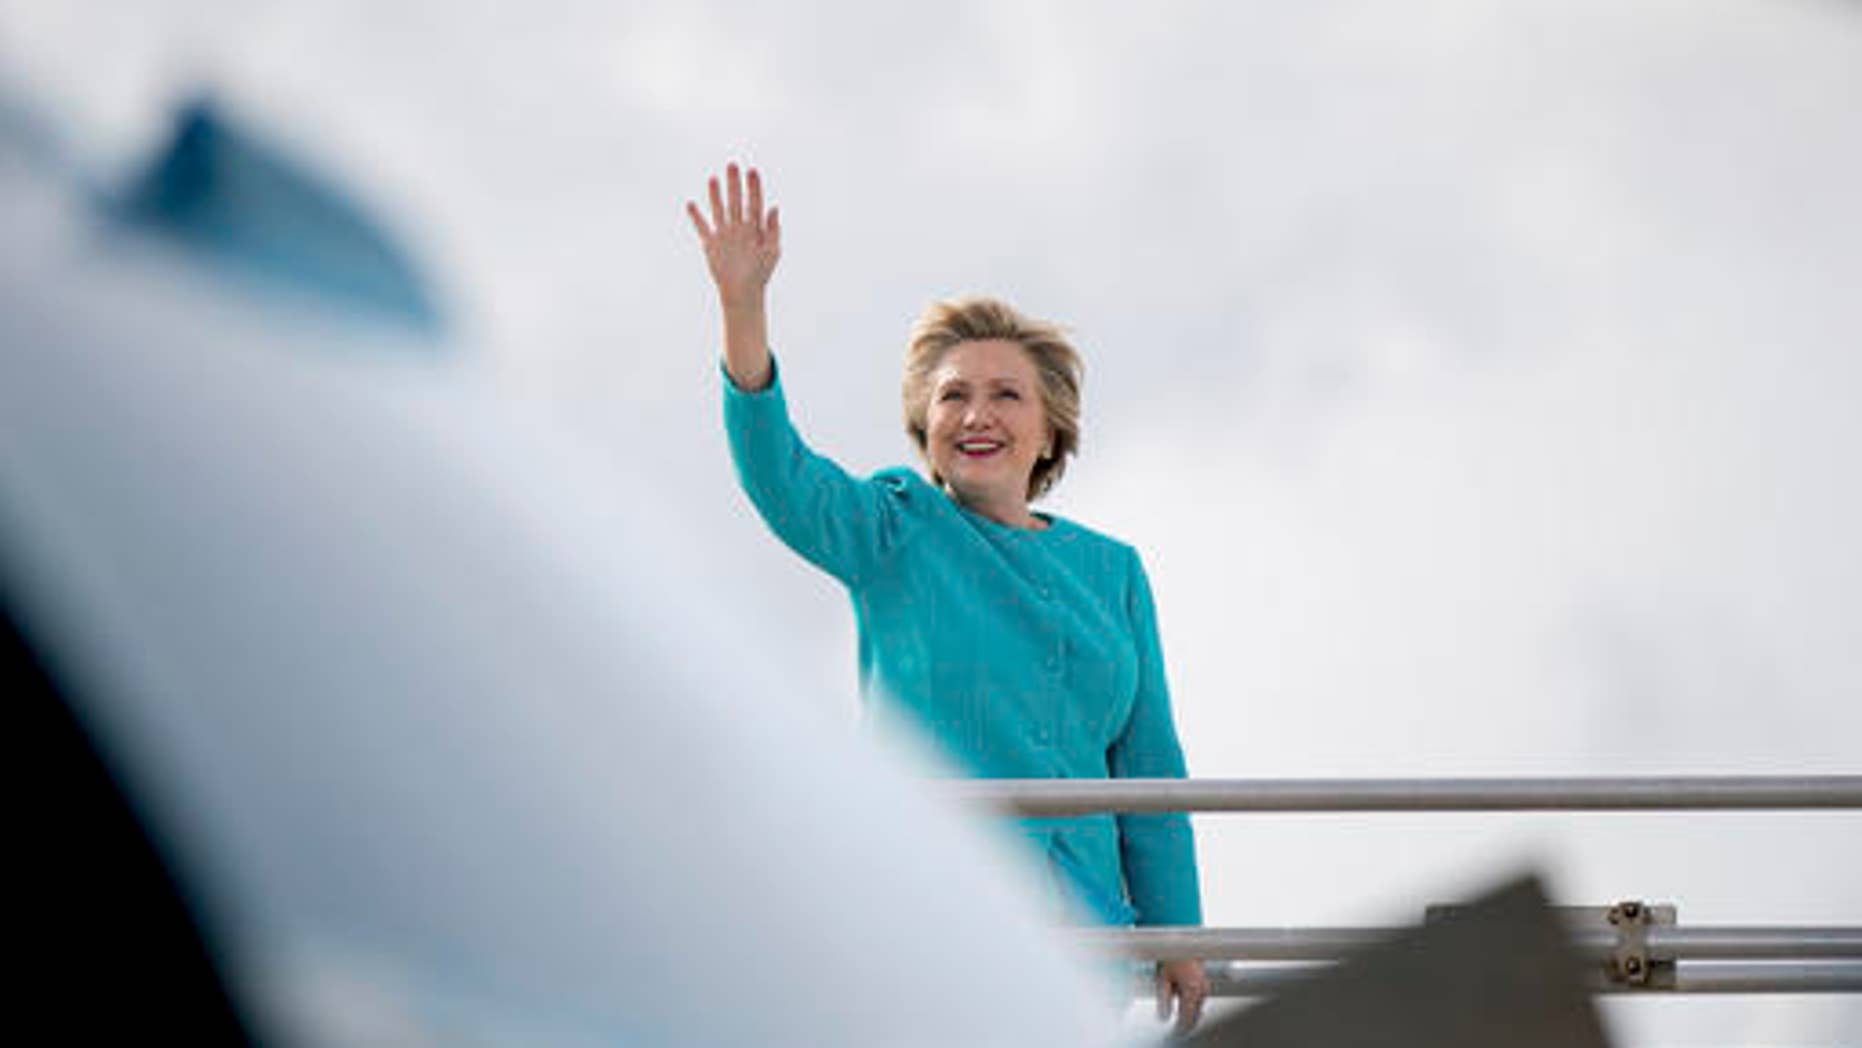 Democratic presidential candidate Hillary Clinton waves before boarding her campaign plane at Miami International Airport in Miami, Wednesday, Oct. 26, 2016, to travel to Lake Worth, Fla. for a rally.